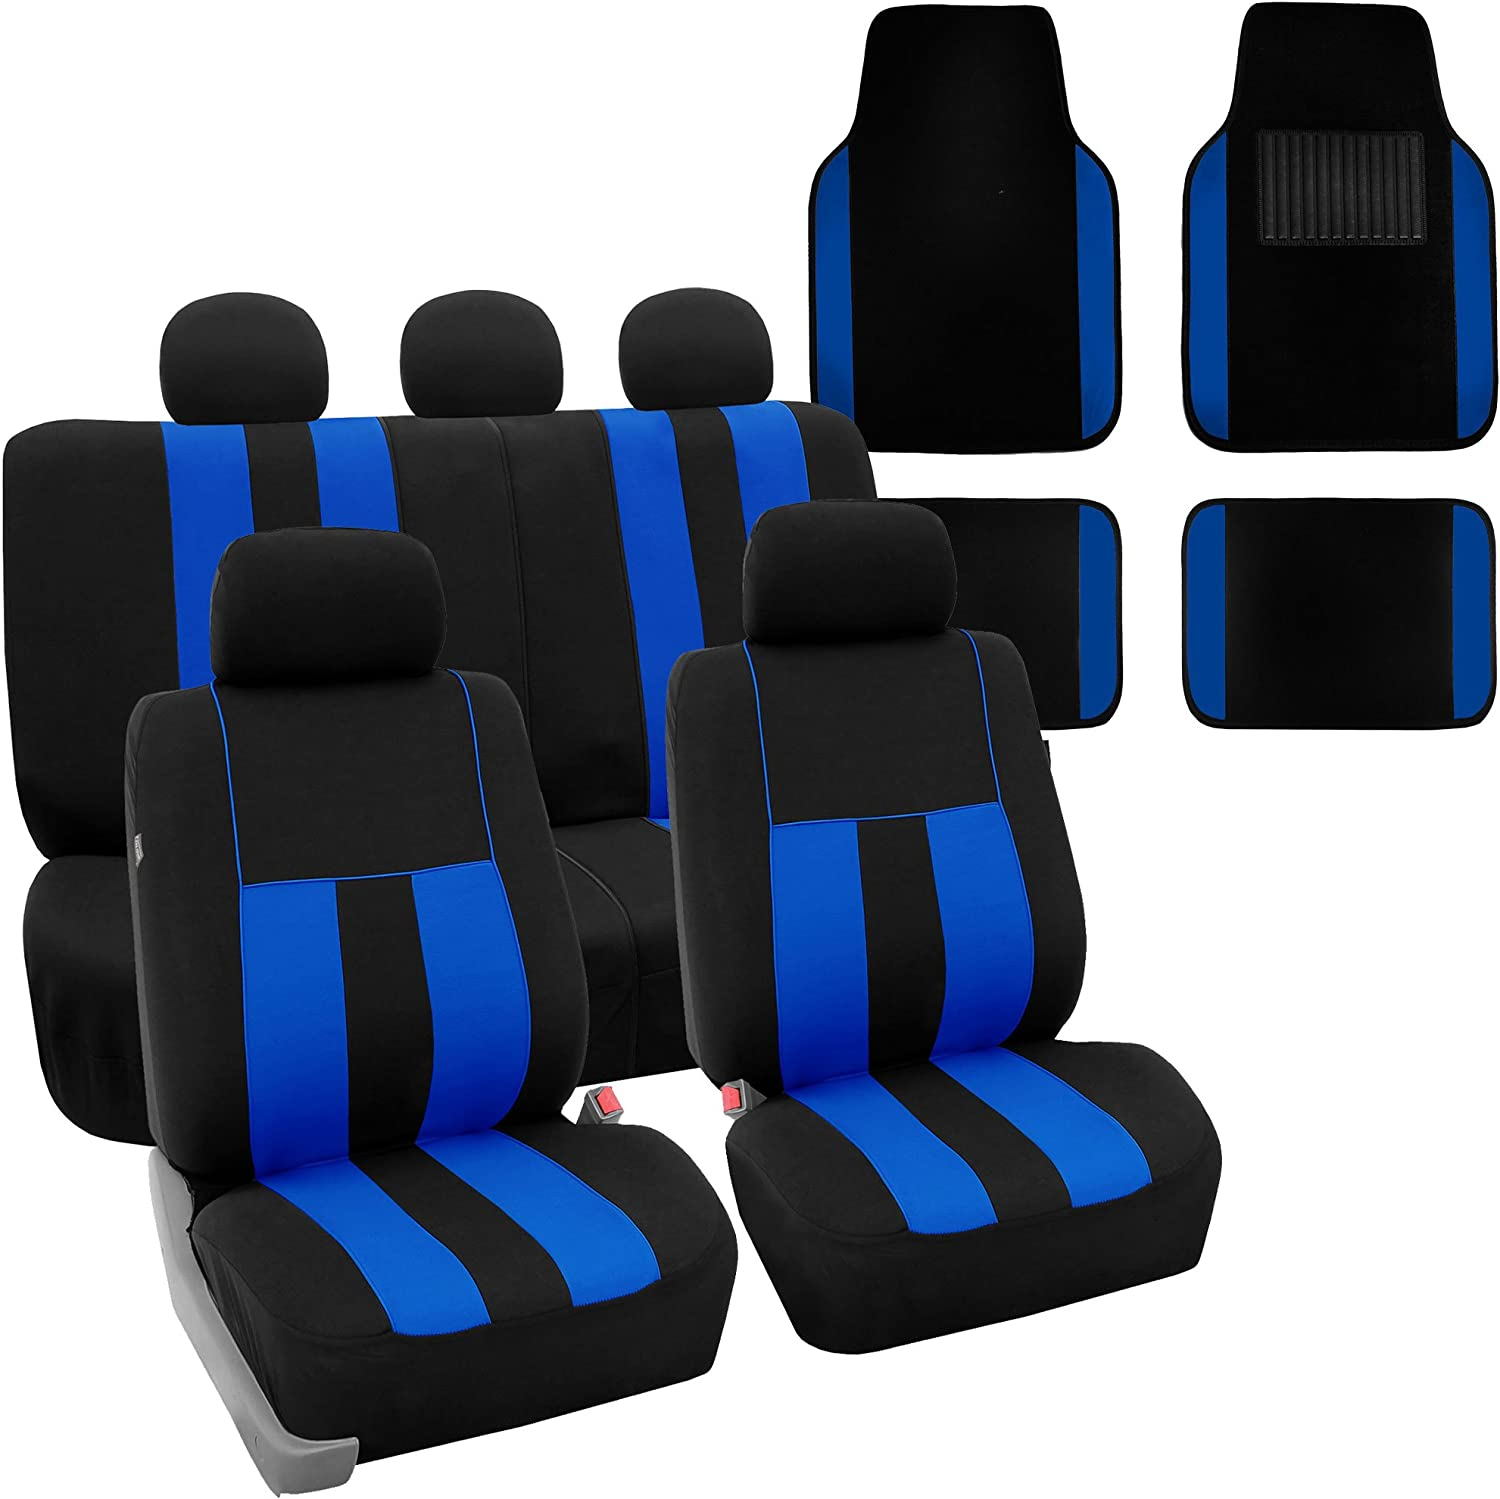 FH Group FH-FB036115 + F14407 Combo Set: Striking Striped Seat Covers with Premium Carpet Floor Mats Blue/Black Color- Fit Most Car, Truck, SUV, or Van